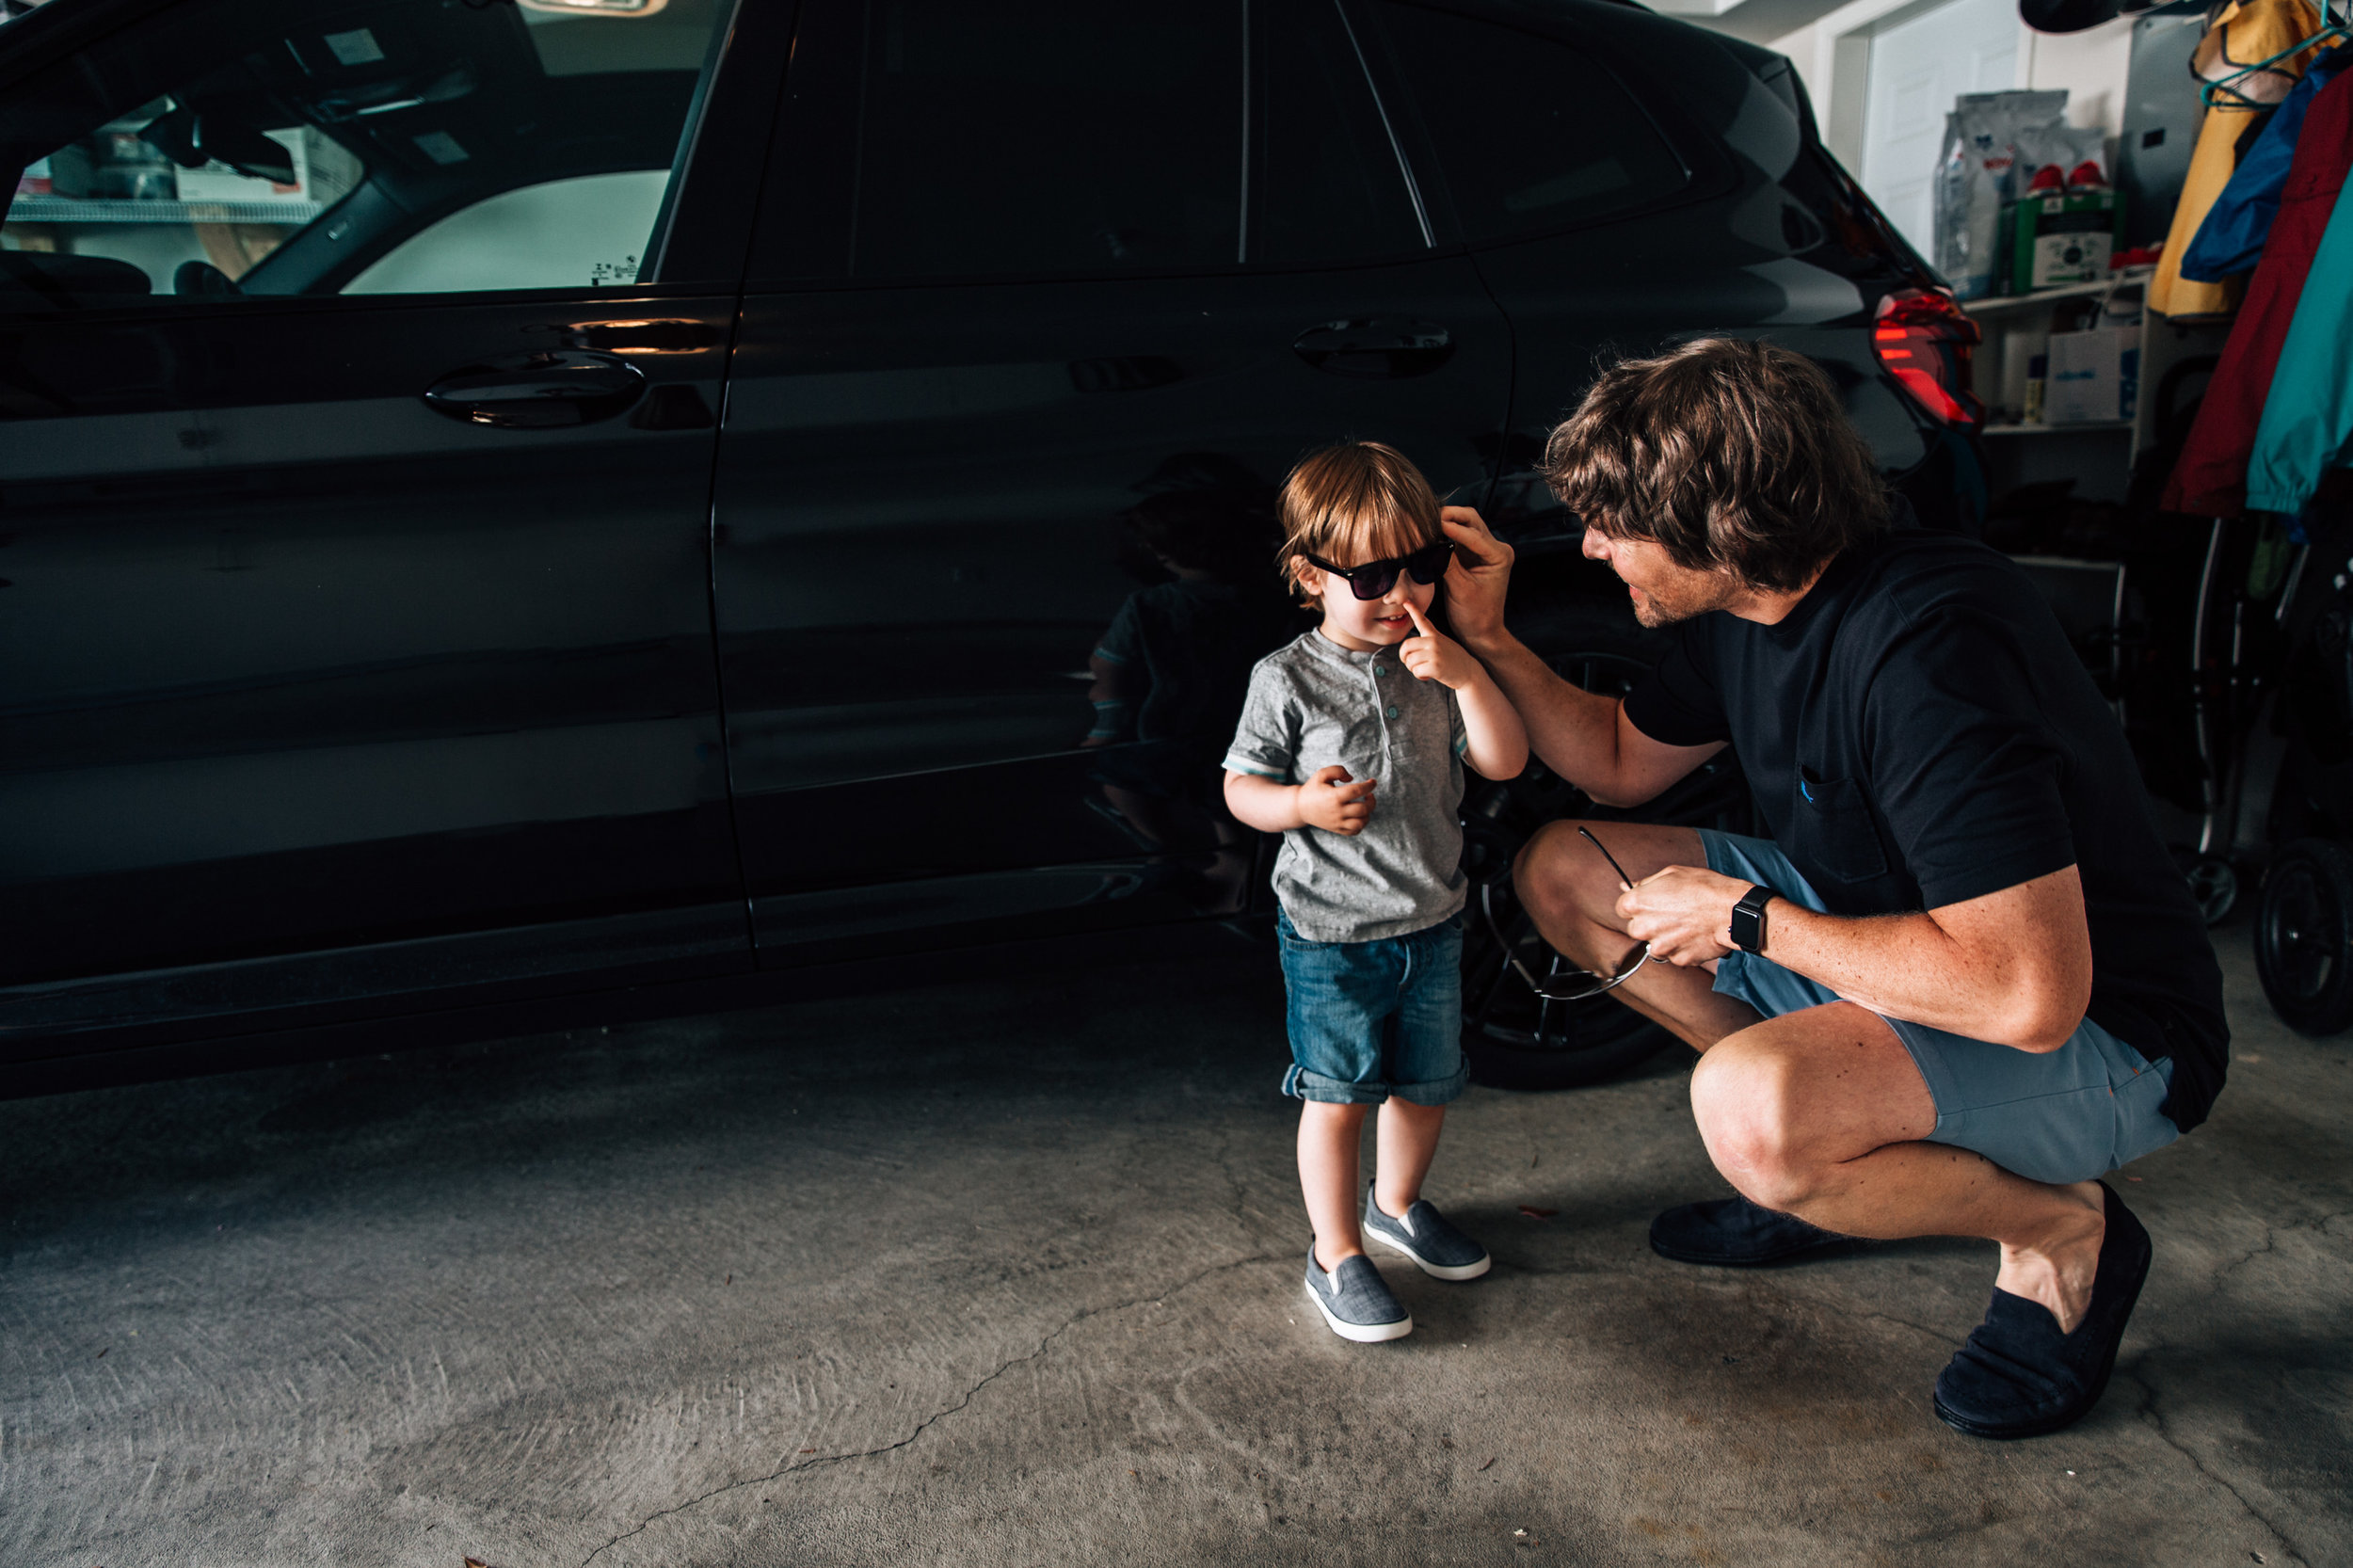 dad squatting down and putting glasses on young child in the garage